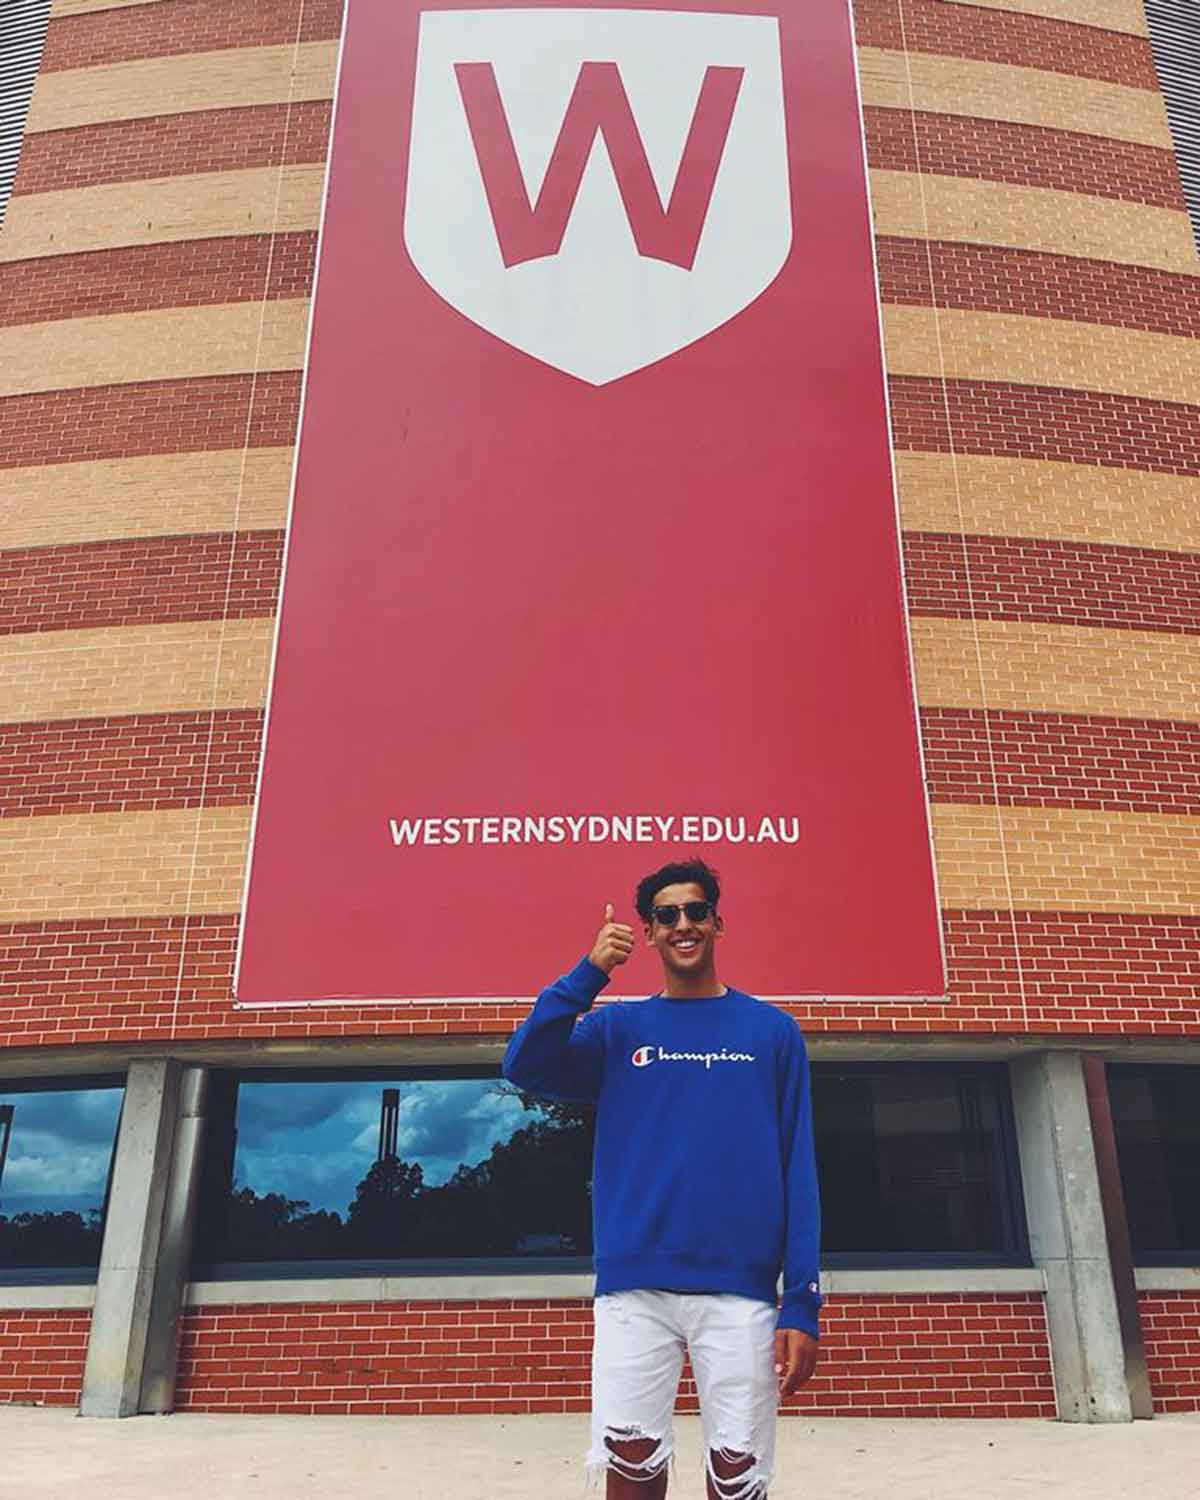 jayden ojeda at WS Uni